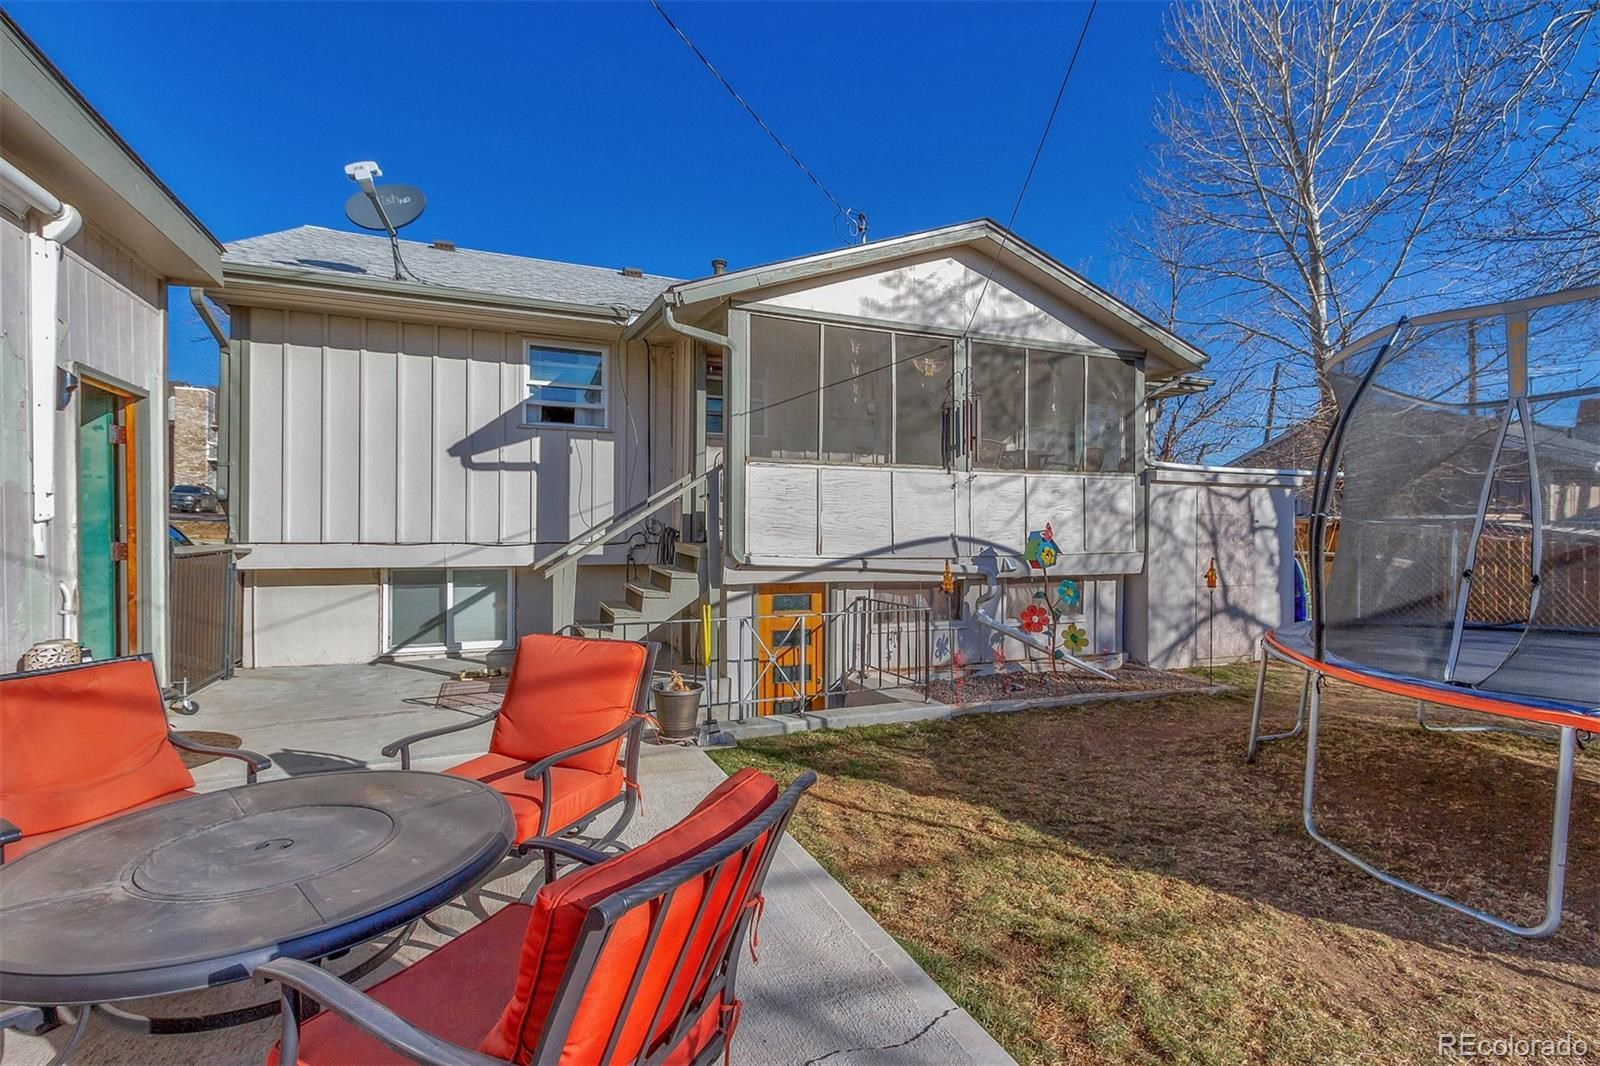 MLS# 9761981 - 12 - 240 W 80th Avenue, Denver, CO 80221